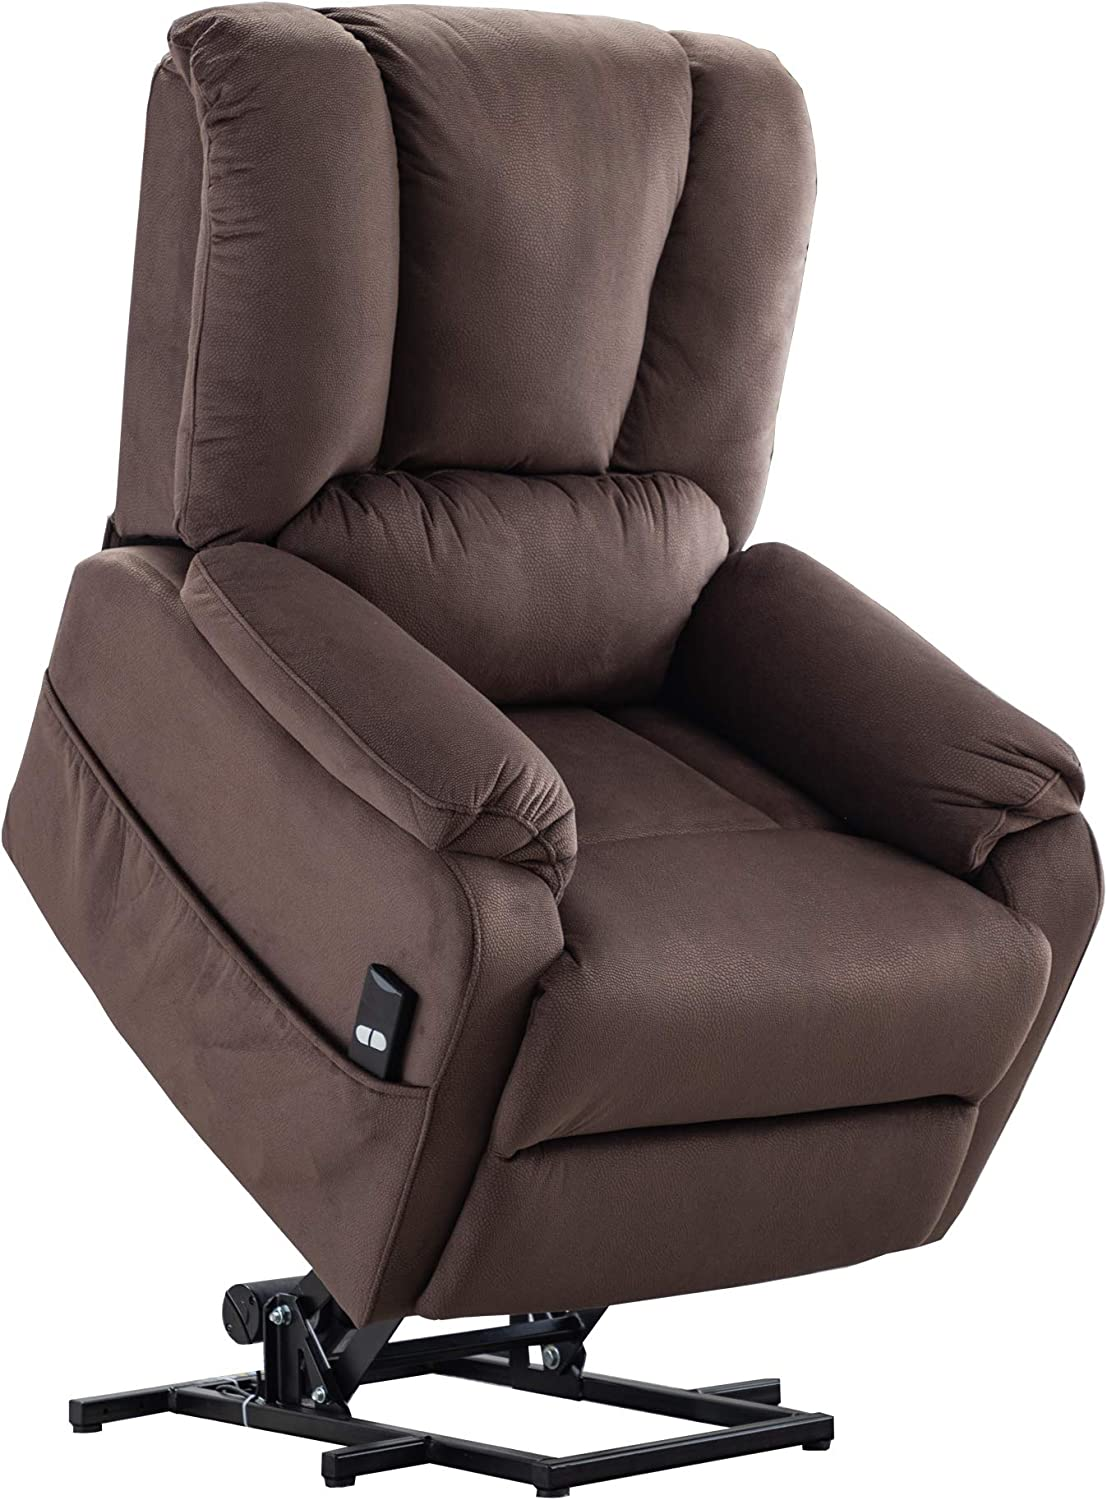 Merax Power Lift Recliner Chair Lazy Sofa for Elderly, Heavy-Duty Fuction with Remote Control, Office or Living Room, Chocolate